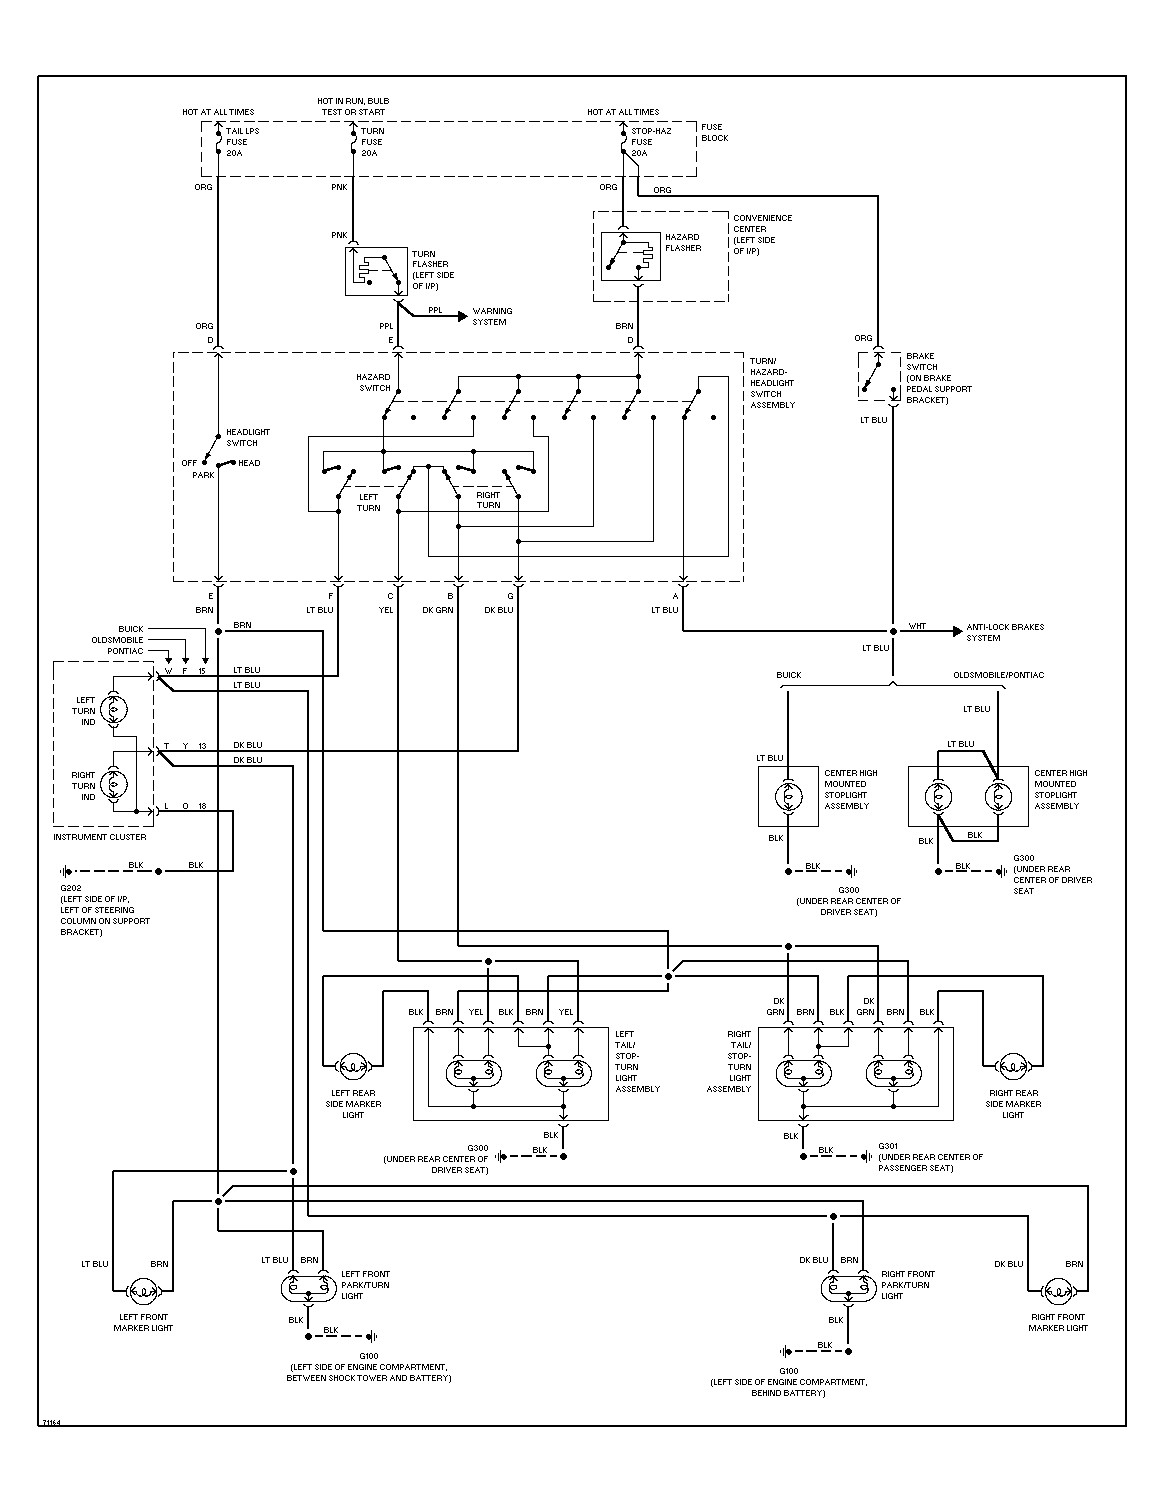 2001 Pontiac Grand Prix Radio Wiring Diagram Collection